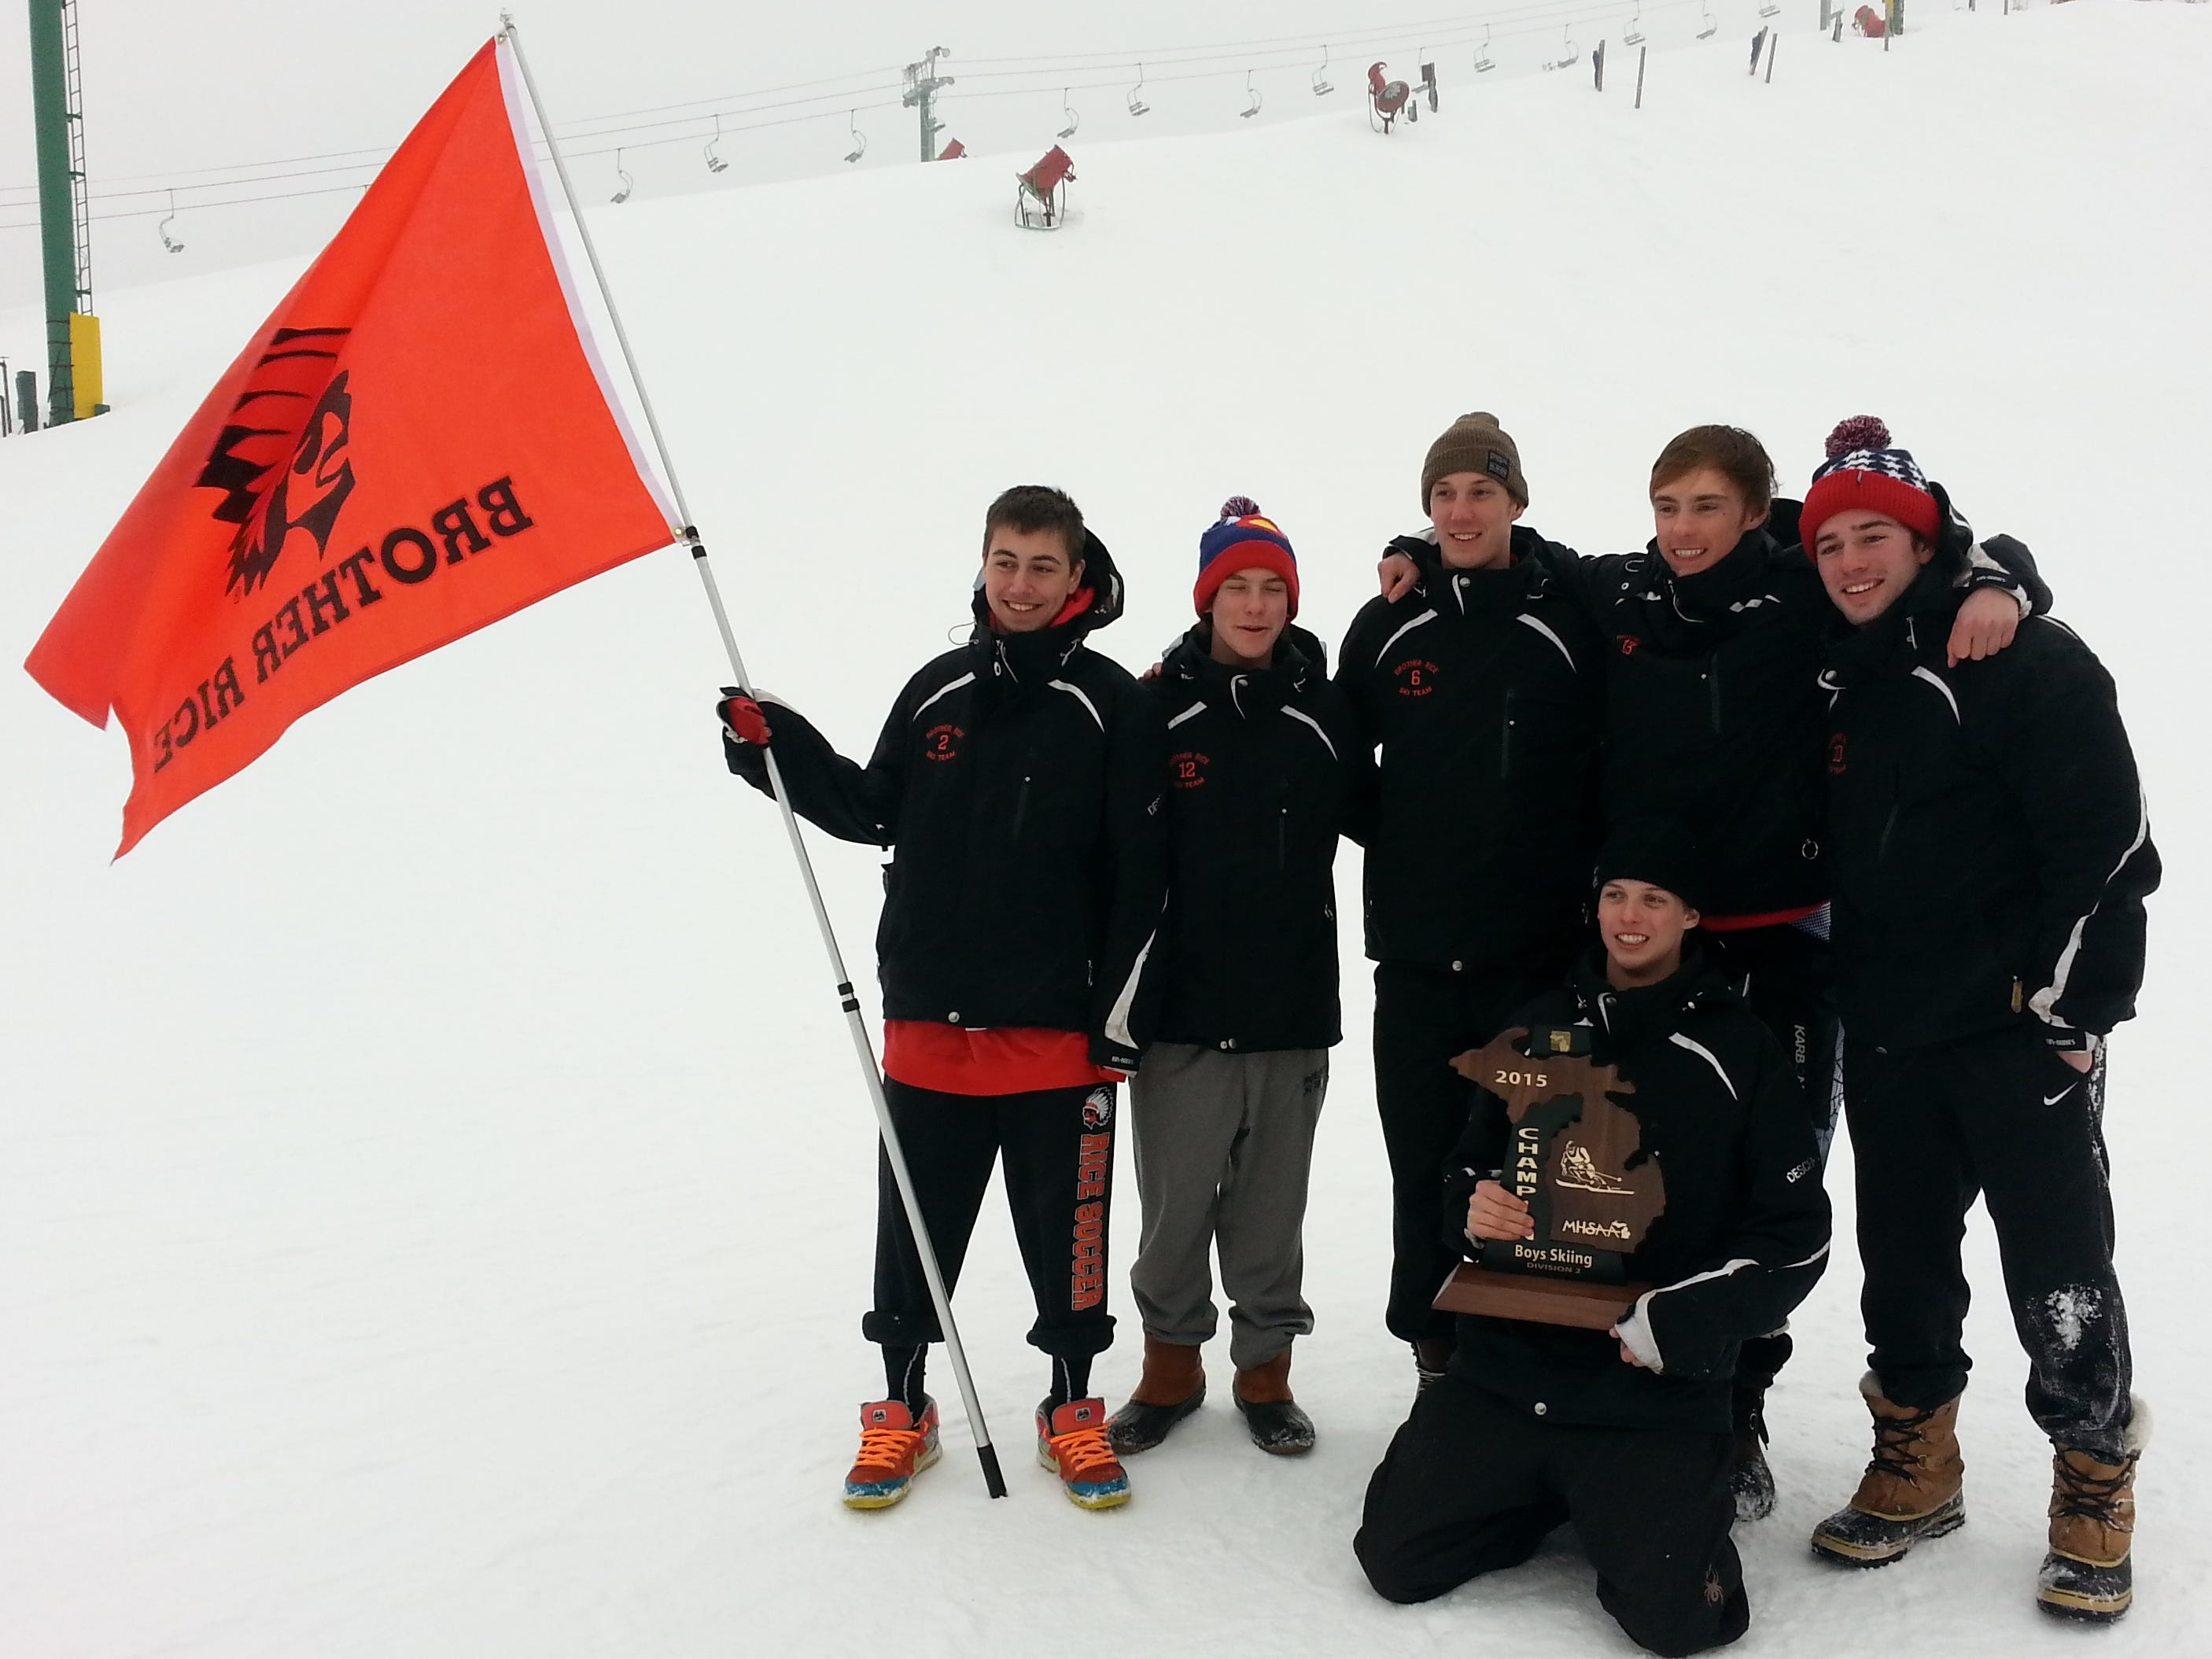 Brother Rice dominated the Division 2 regional championship meet Wednesday at Pine Knob. Team members included Robbie Cort, Max Radecky, Daniel Lunghamer, Thomas Hamill, Michael Richard and Blaize Surhigh.